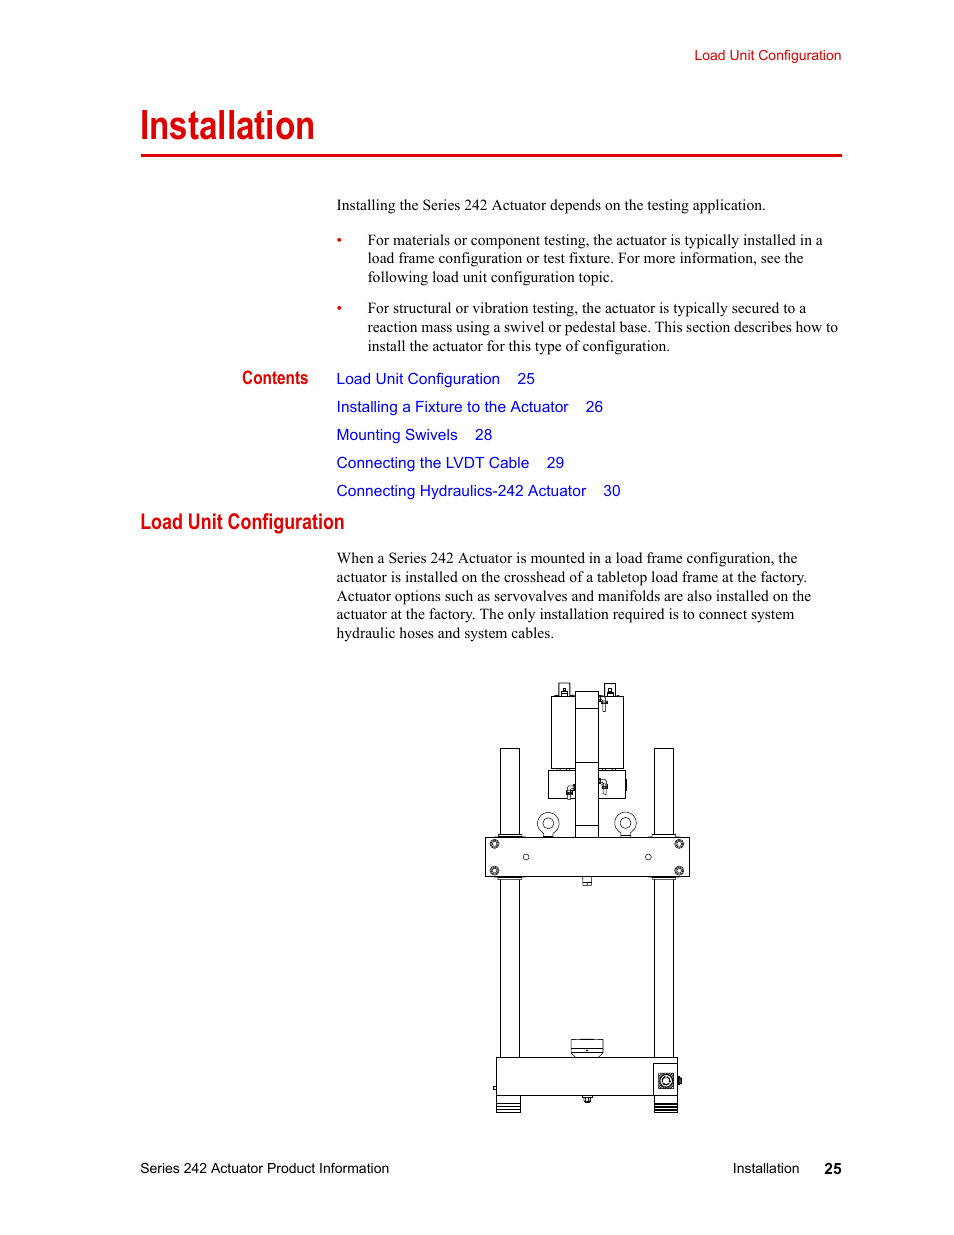 Installation, Load unit configuration, Installation 25 | MTS Series 242  Actuators User Manual | Page 25 / 40